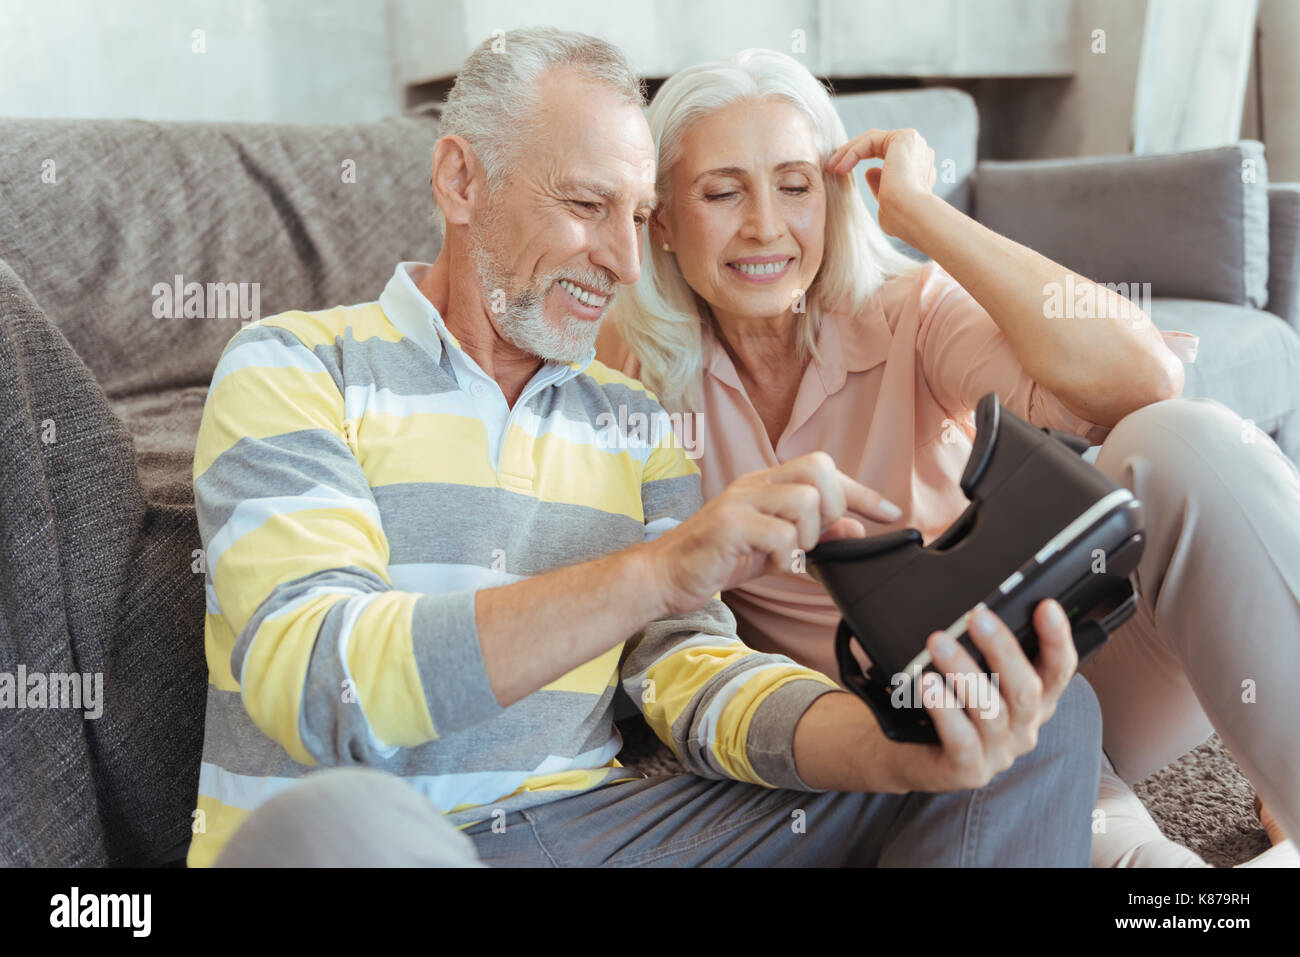 Positive aged couple trying up virtual reality device - Stock Image